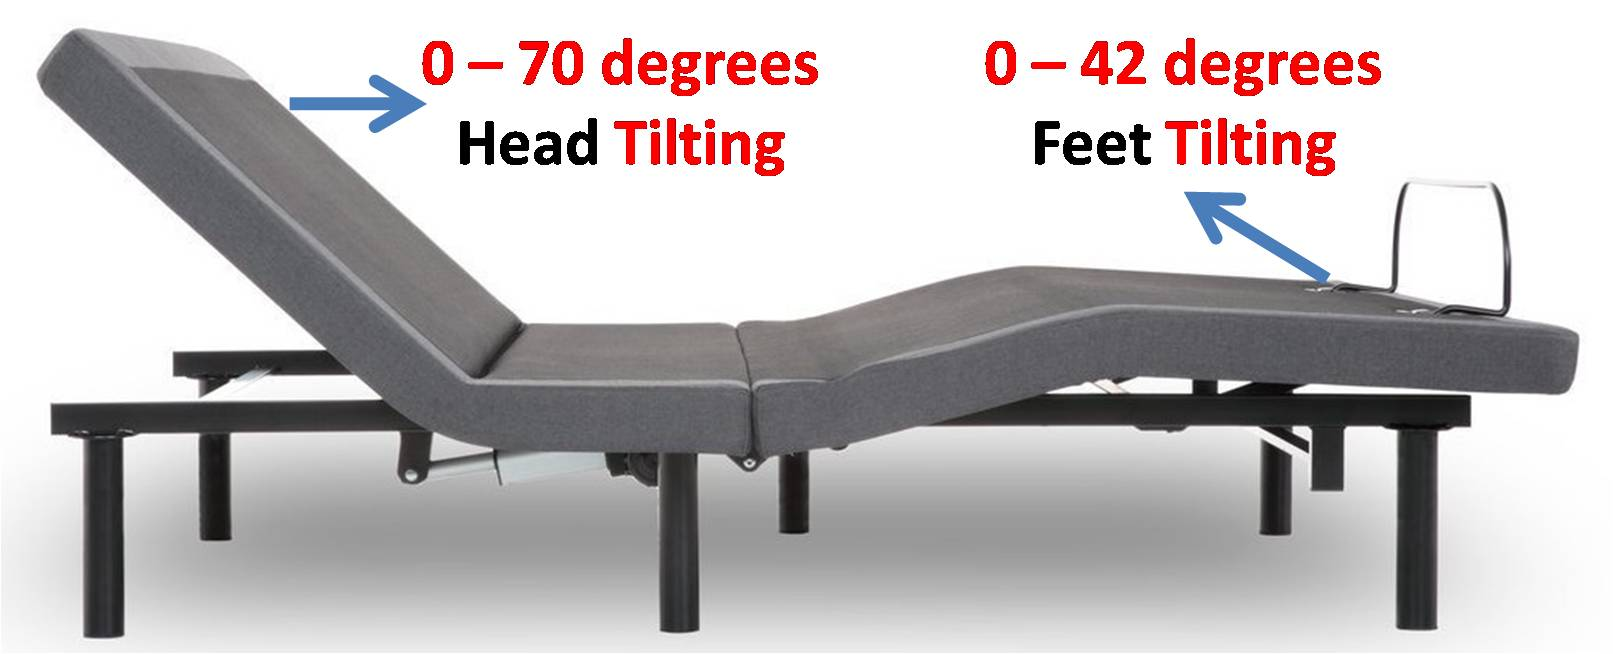 iDealBed 4i Custom Adjustable Bed Base Review - Head & Foot Tilts